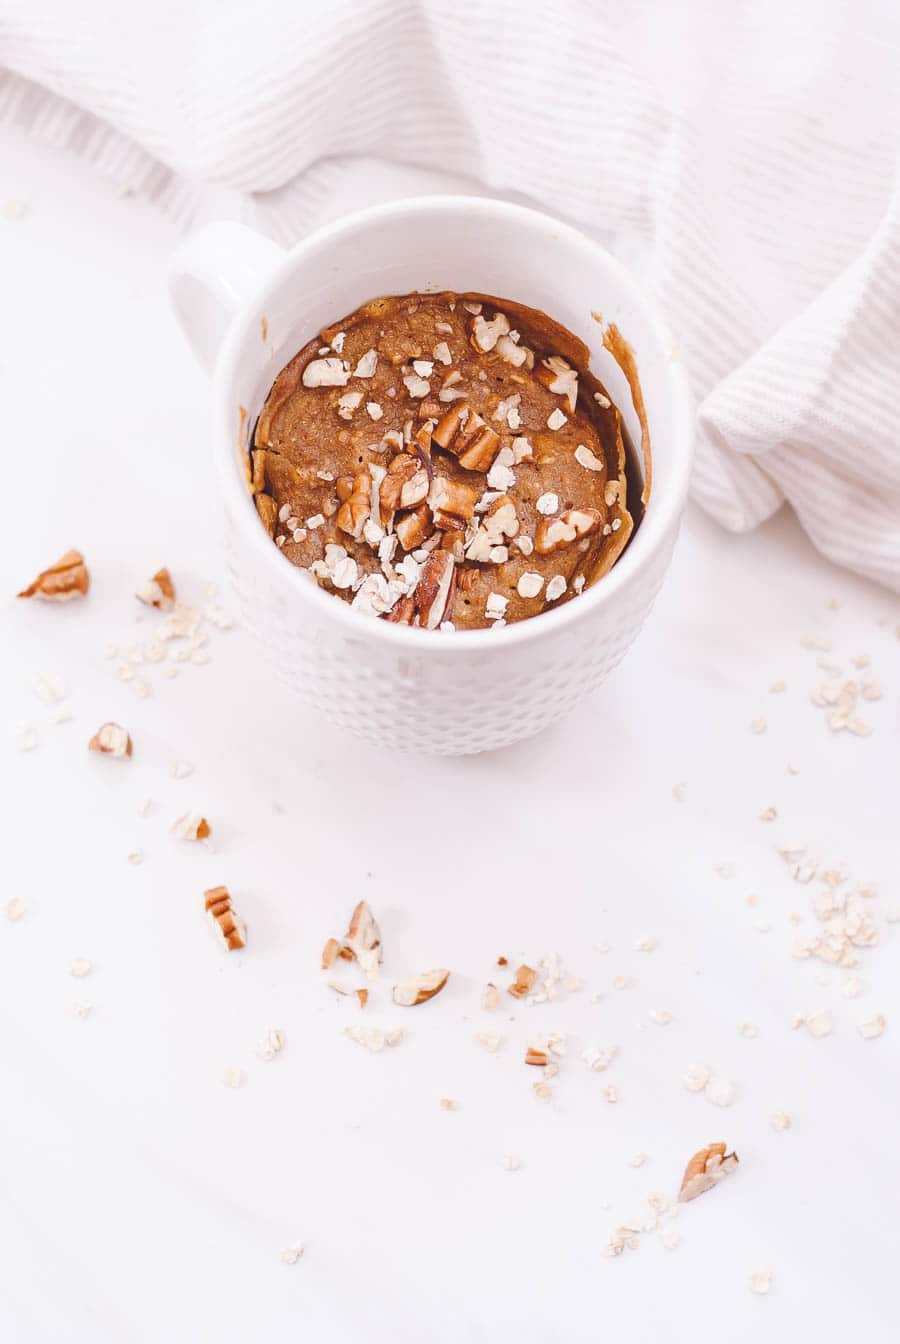 Healthy Breakfast Pumpkin Spice Mug Cake - an easy, 2 minute breakfast full of pumpkin, spice & everything nice! This protein and fiber packed meal the so unbelievably flavorful and delicious!